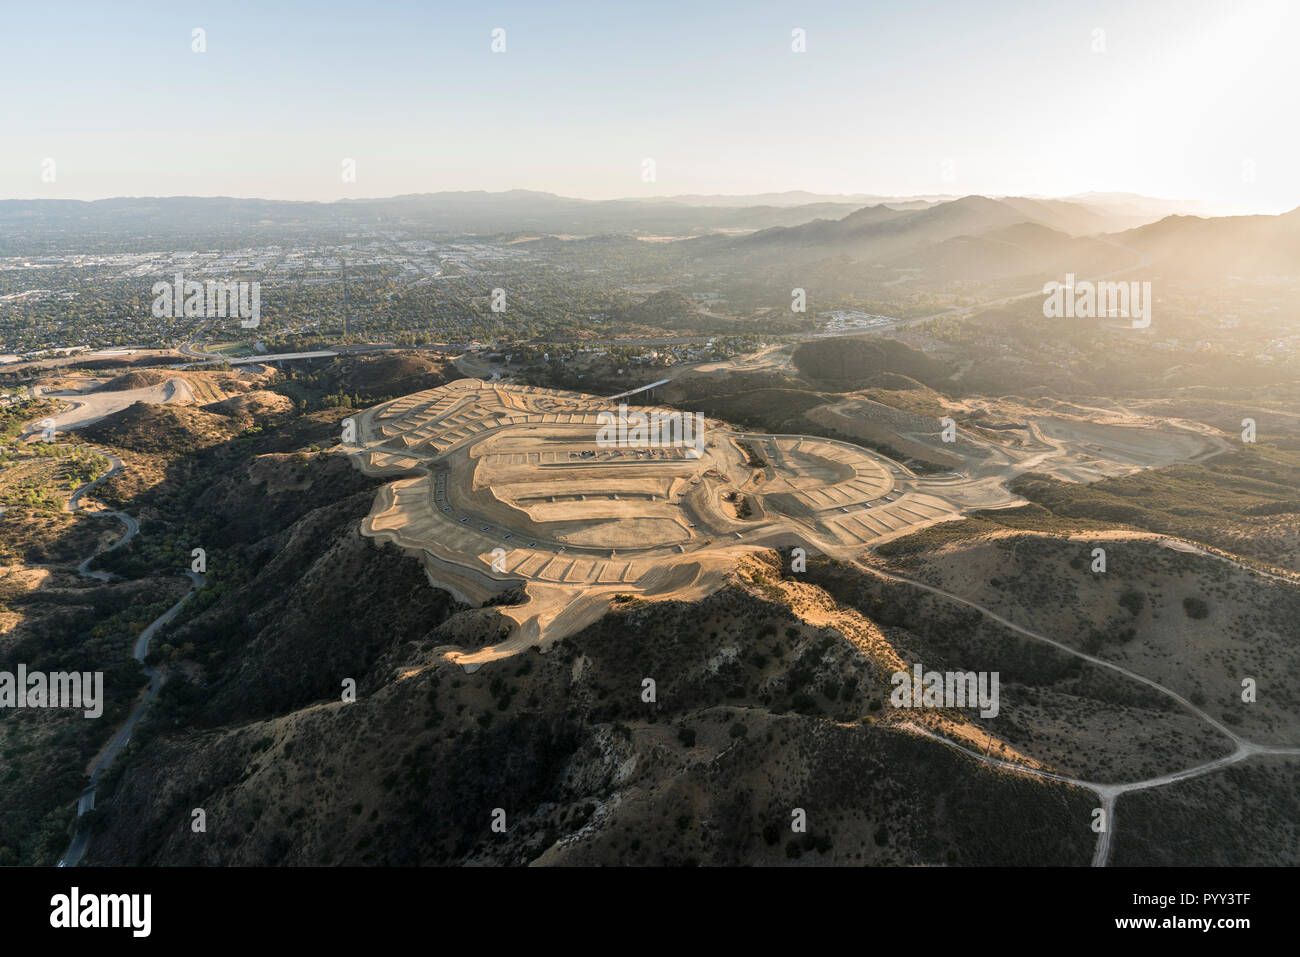 Aerial view of hilltop construction grading near the Porter Ranch community in the San Fernando Valley area of Los Angeles, California. - Stock Image